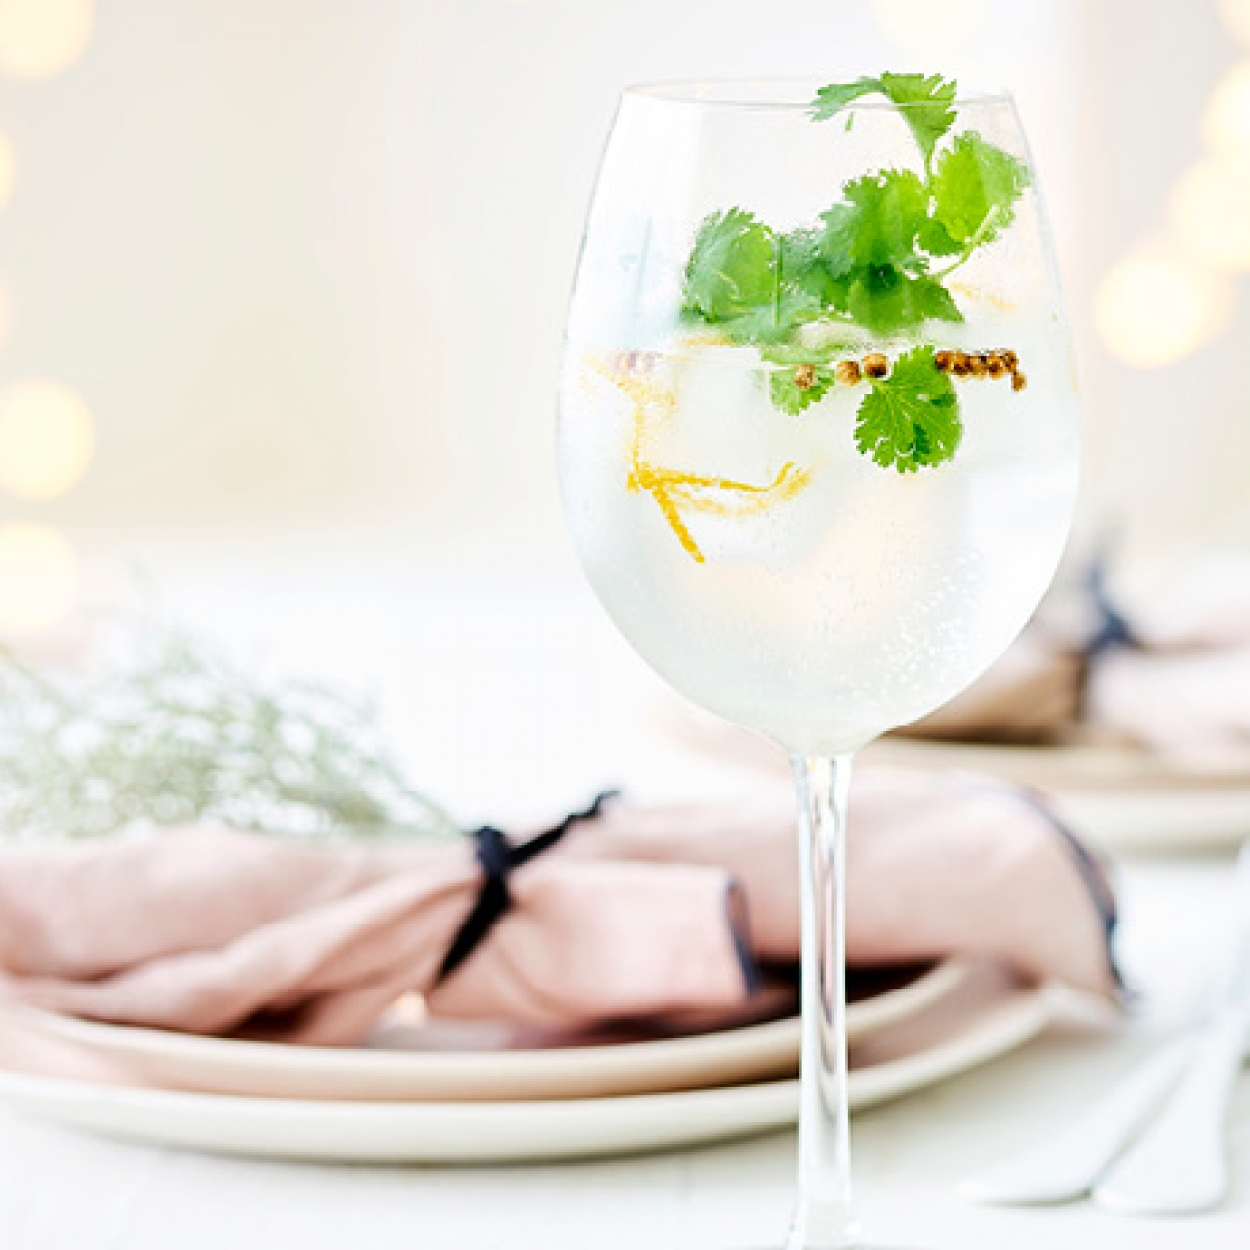 Recette Gin tonic aromatisé coriandre agrumes Carrefour